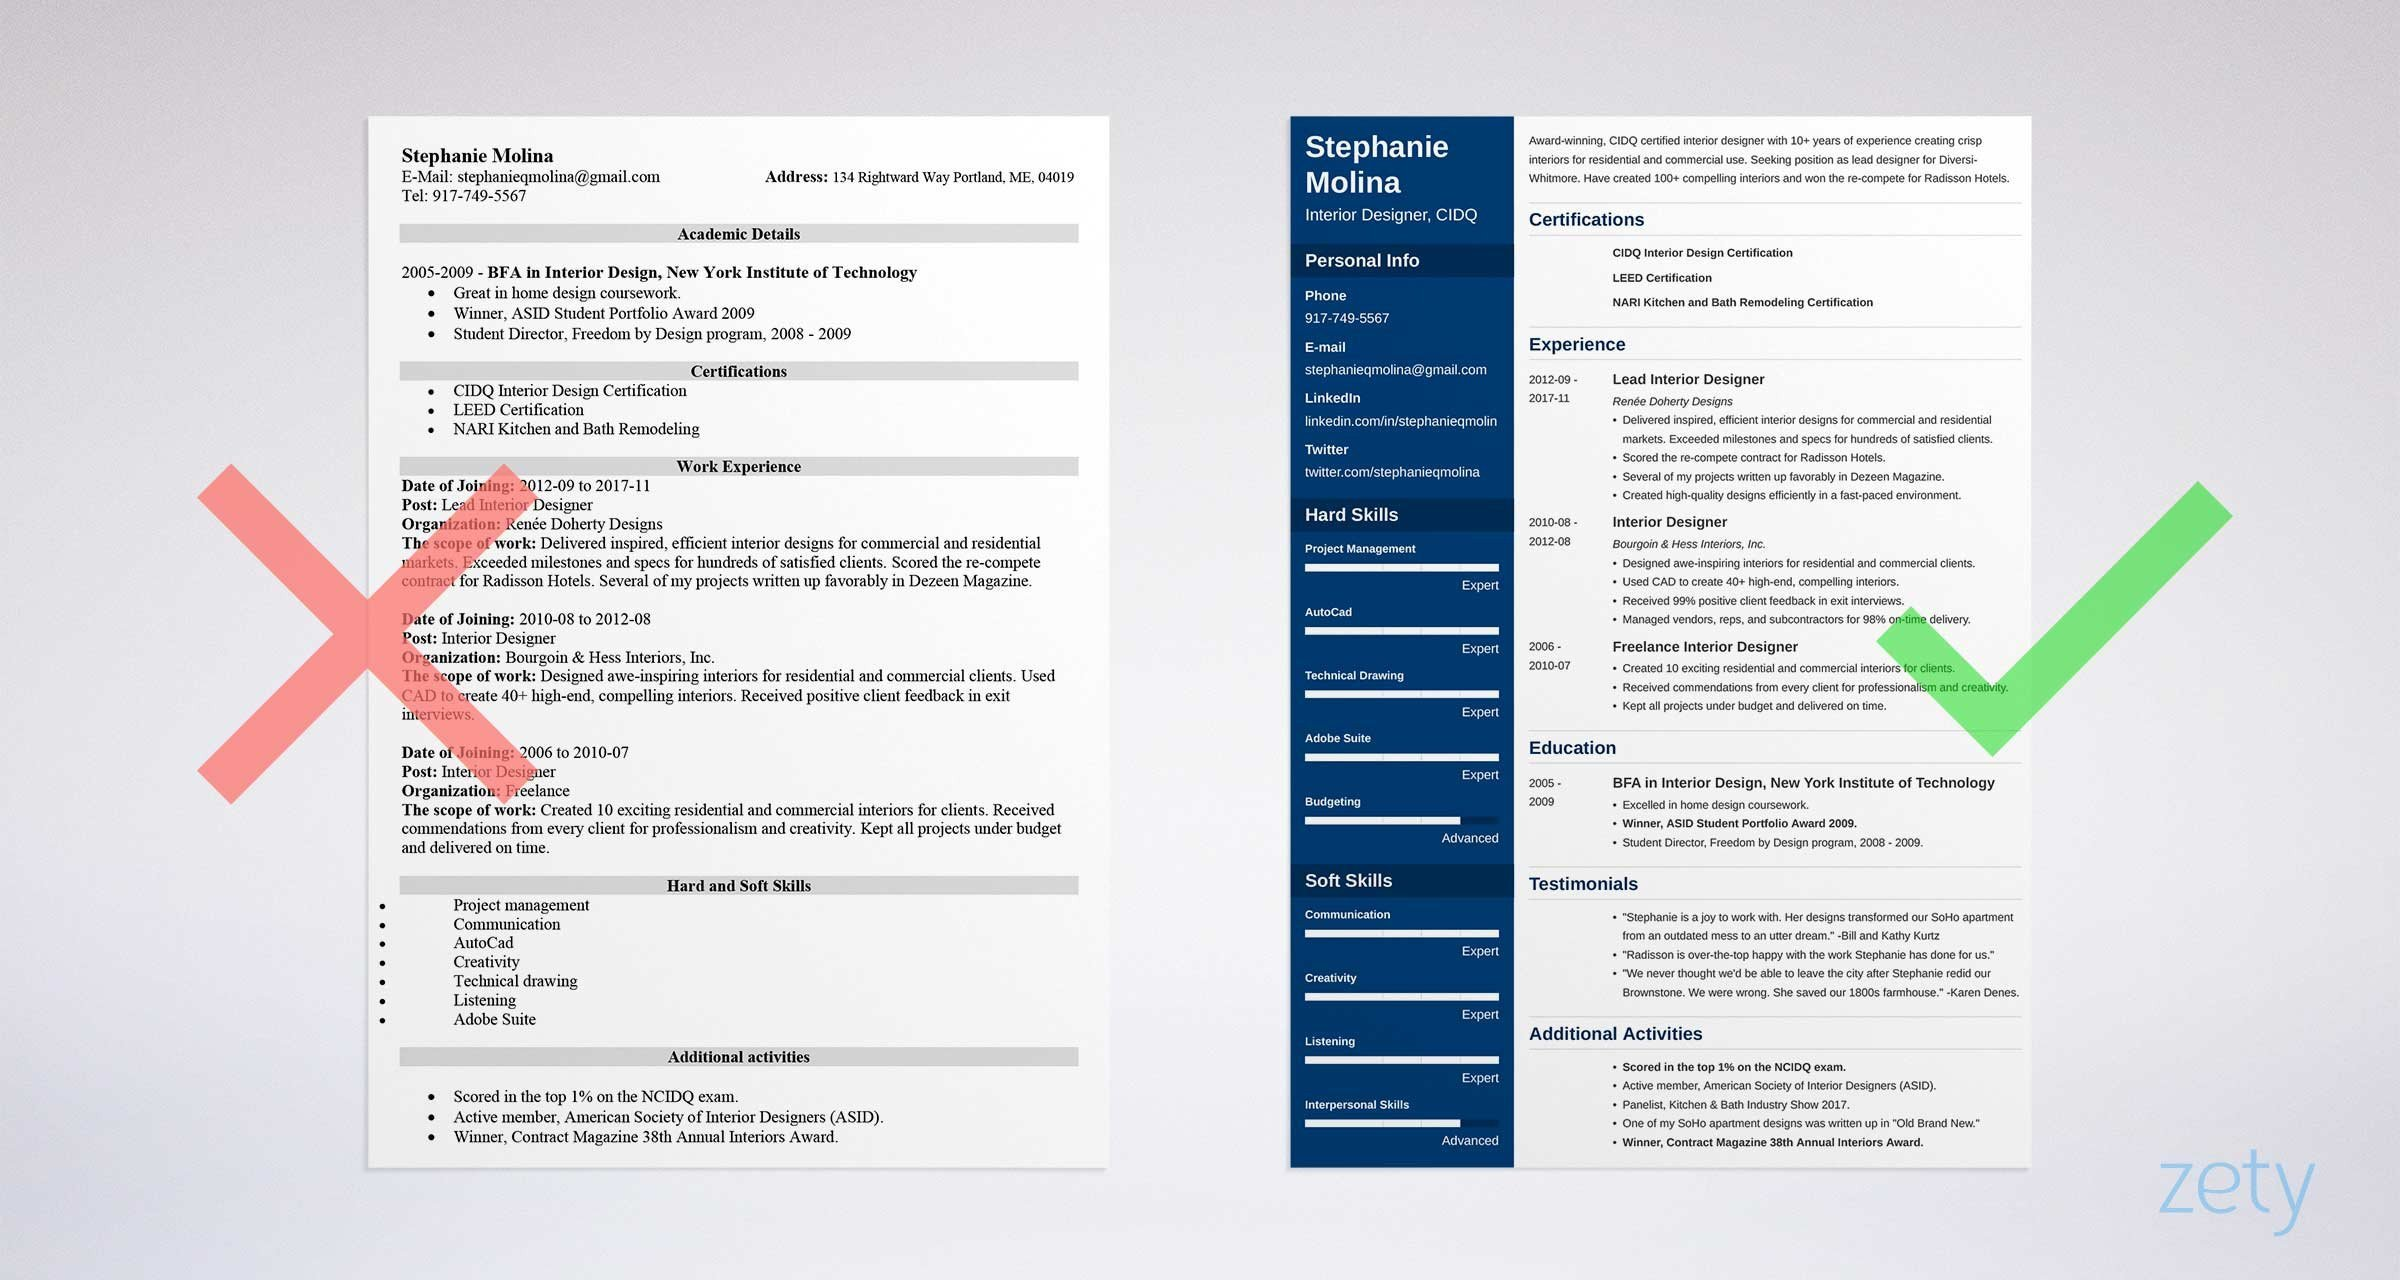 Free Template for Resume Free Resume Templates 17 Free Cv Templates to Download & Use